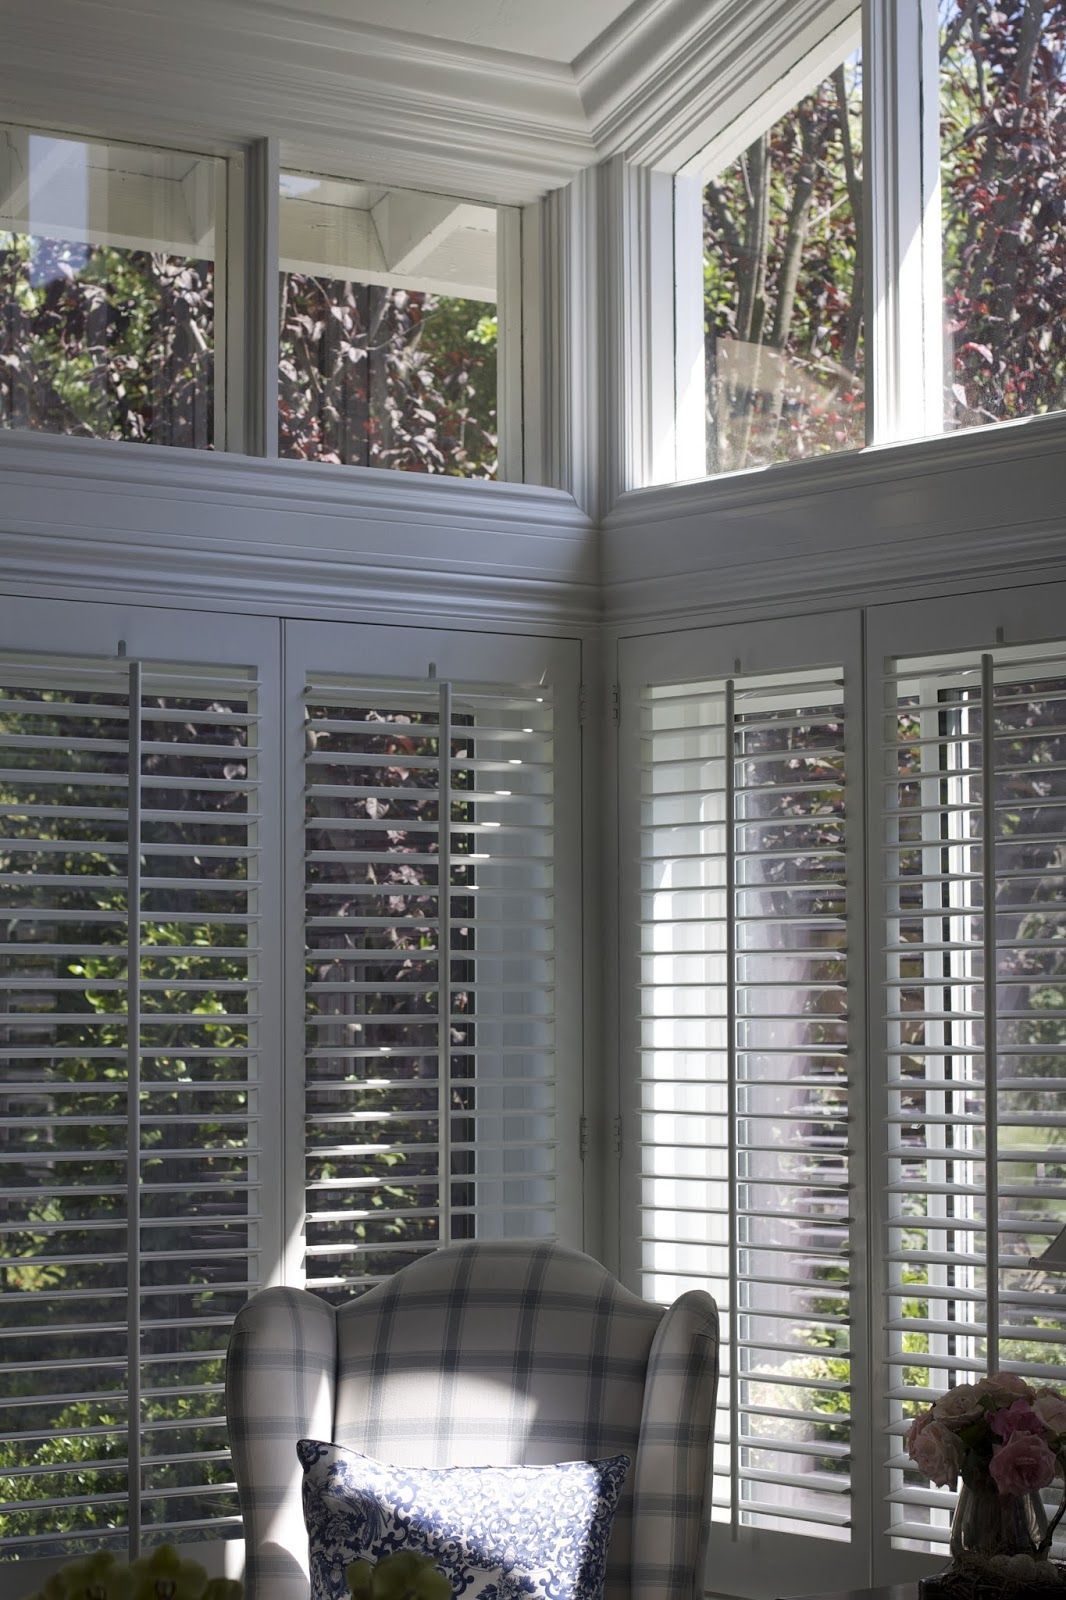 House window shade design  the blue house i just had to share this beautiful transformation